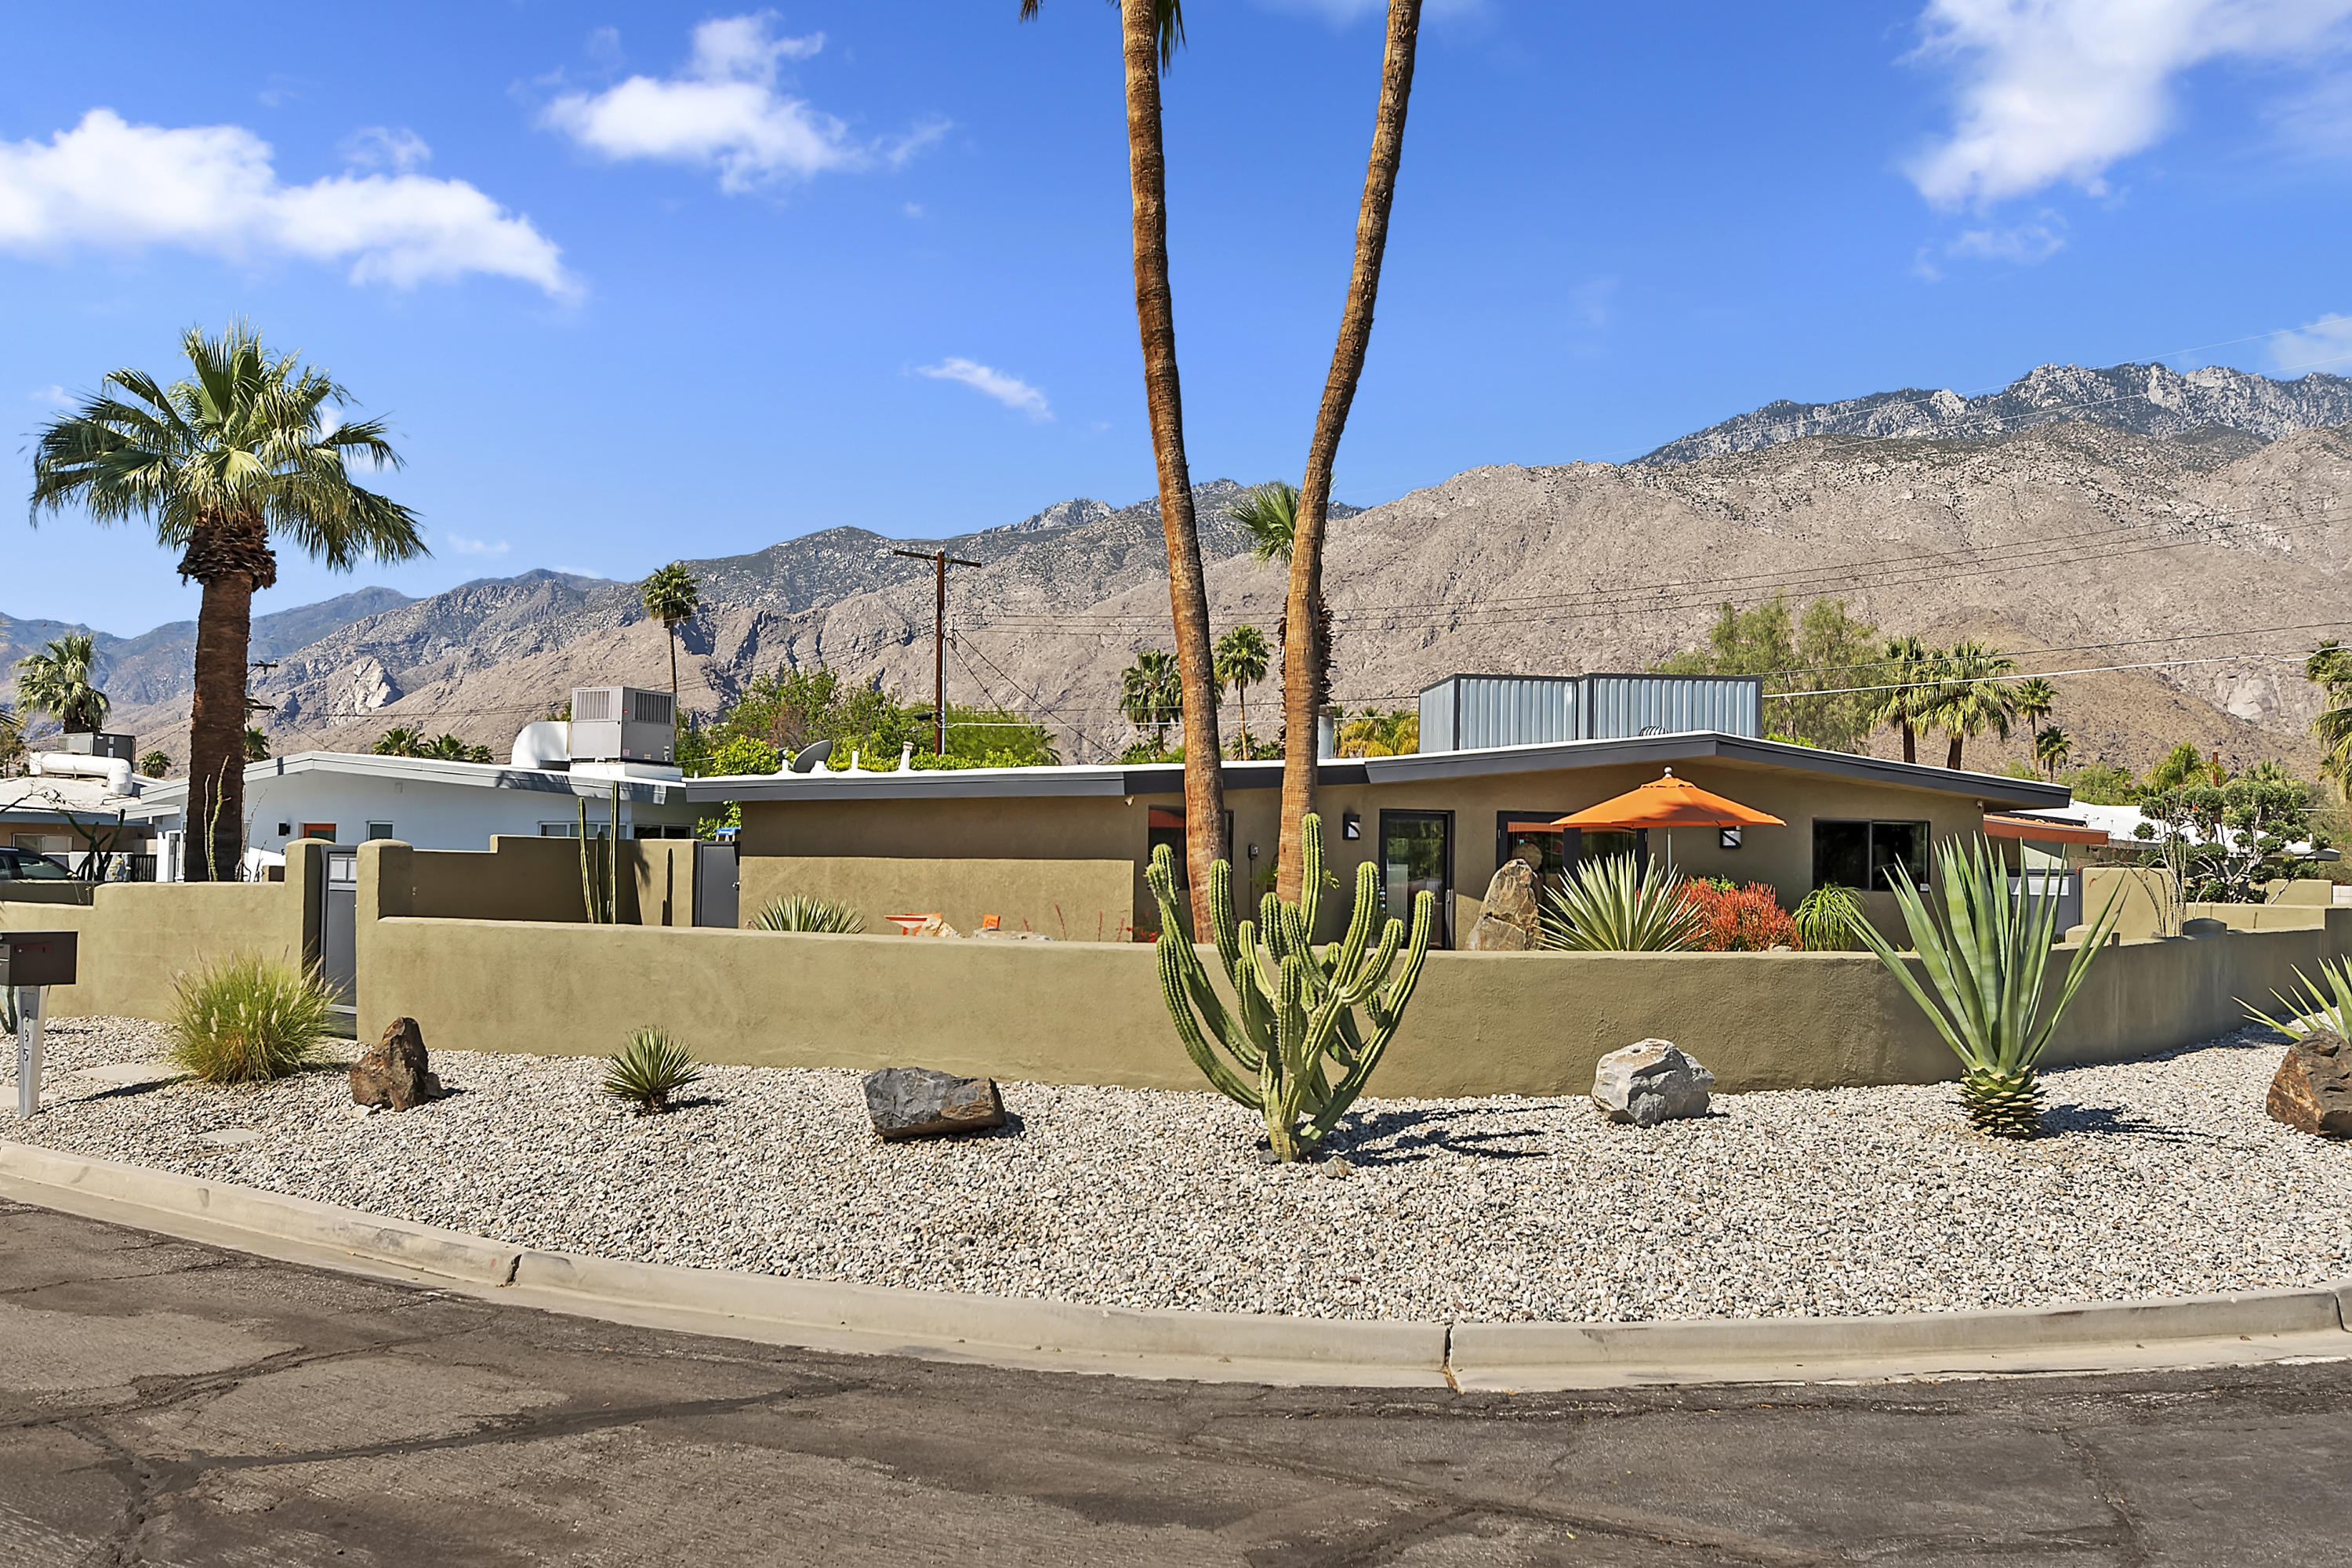 An Alexander Style Mid Century Modern STUNNER! Located in the coveted Movie Colony East, originally known as ''Winterhaven Manor'' area developed by the well known developer Jack Meiselman. I LOVE this home! It truly captures the essence of Palm Springs living.  It's the perfect paradise setting for work or play, the true Palm Springs lifestyle! Located on a corner lot with HUGE Mountain Views and wrap around front patio w/ custom designed landscaping that gives you several choices to entertain or relax. Complete Remodel from modern quartz counters to futuristic light fixtures. Popular open floor plan from living room /dining area that blends seamlessly into the kitchen.  Large primary suite with sitting area overlooking our prized mountains and your beautiful pool w/ custom multi color lights & soothing water feature spillover. Second room is a junior guest suite with your own private bath. Third room has been made over into an office dream work area with custom modern cabinets & desks. Upgrades include: New pavers in the backyard, pool remodel w/ newer pool filter, newer foam roof, newer HVAC system w/ new grills, newer tankless water heater & retractable awning with new cover and motor over your parking area plus much more, see list of upgrades. This is a truly enchanting property perfect for the Mid-Century modern enthusiast, you will not be disappointed. Start enjoying yourself with friends and family or use it as a ready-made Airbnb - short term vacation rental.